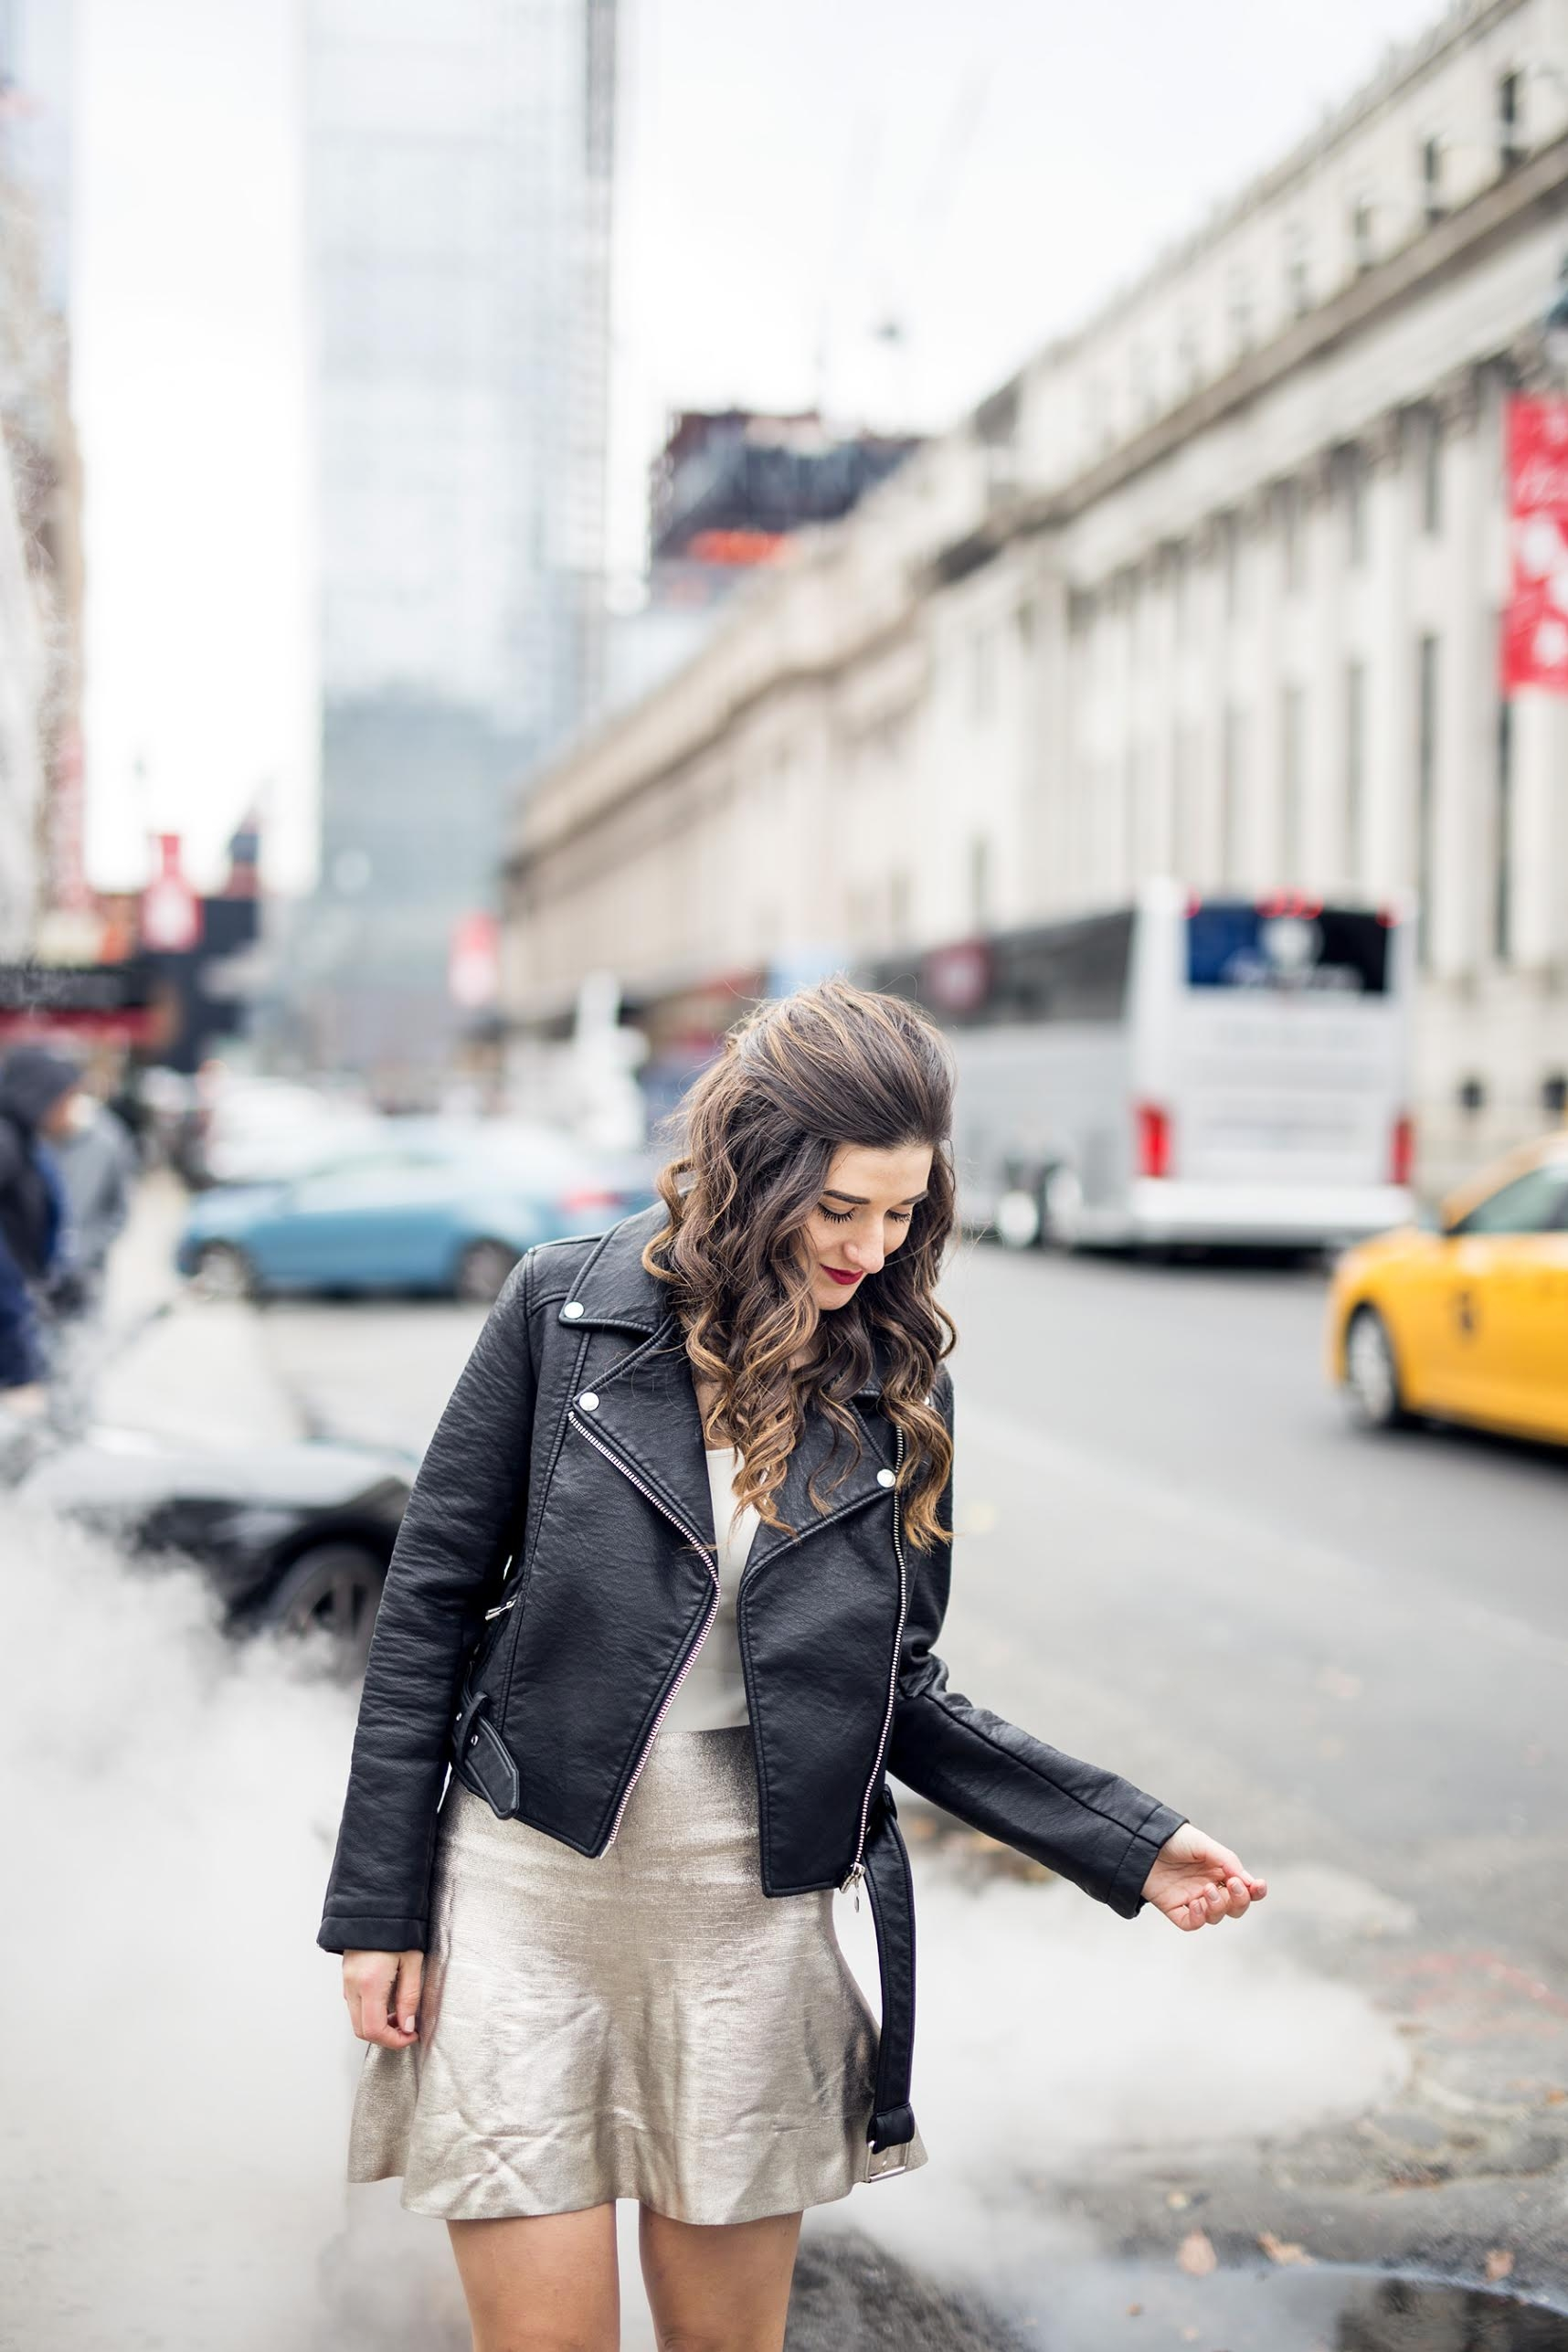 Feminine Edgy Look For The Holidays Payless Louboutins & Love Fashion Blog Esther Santer NYC Street Style Blogger Outfit OOTD Trendy Metallic Skirt Black Moto Leather Jacket Girly Lace-Up Heels Hair Women Shoes Shopping Party Pretty Photoshoot Model.jpg